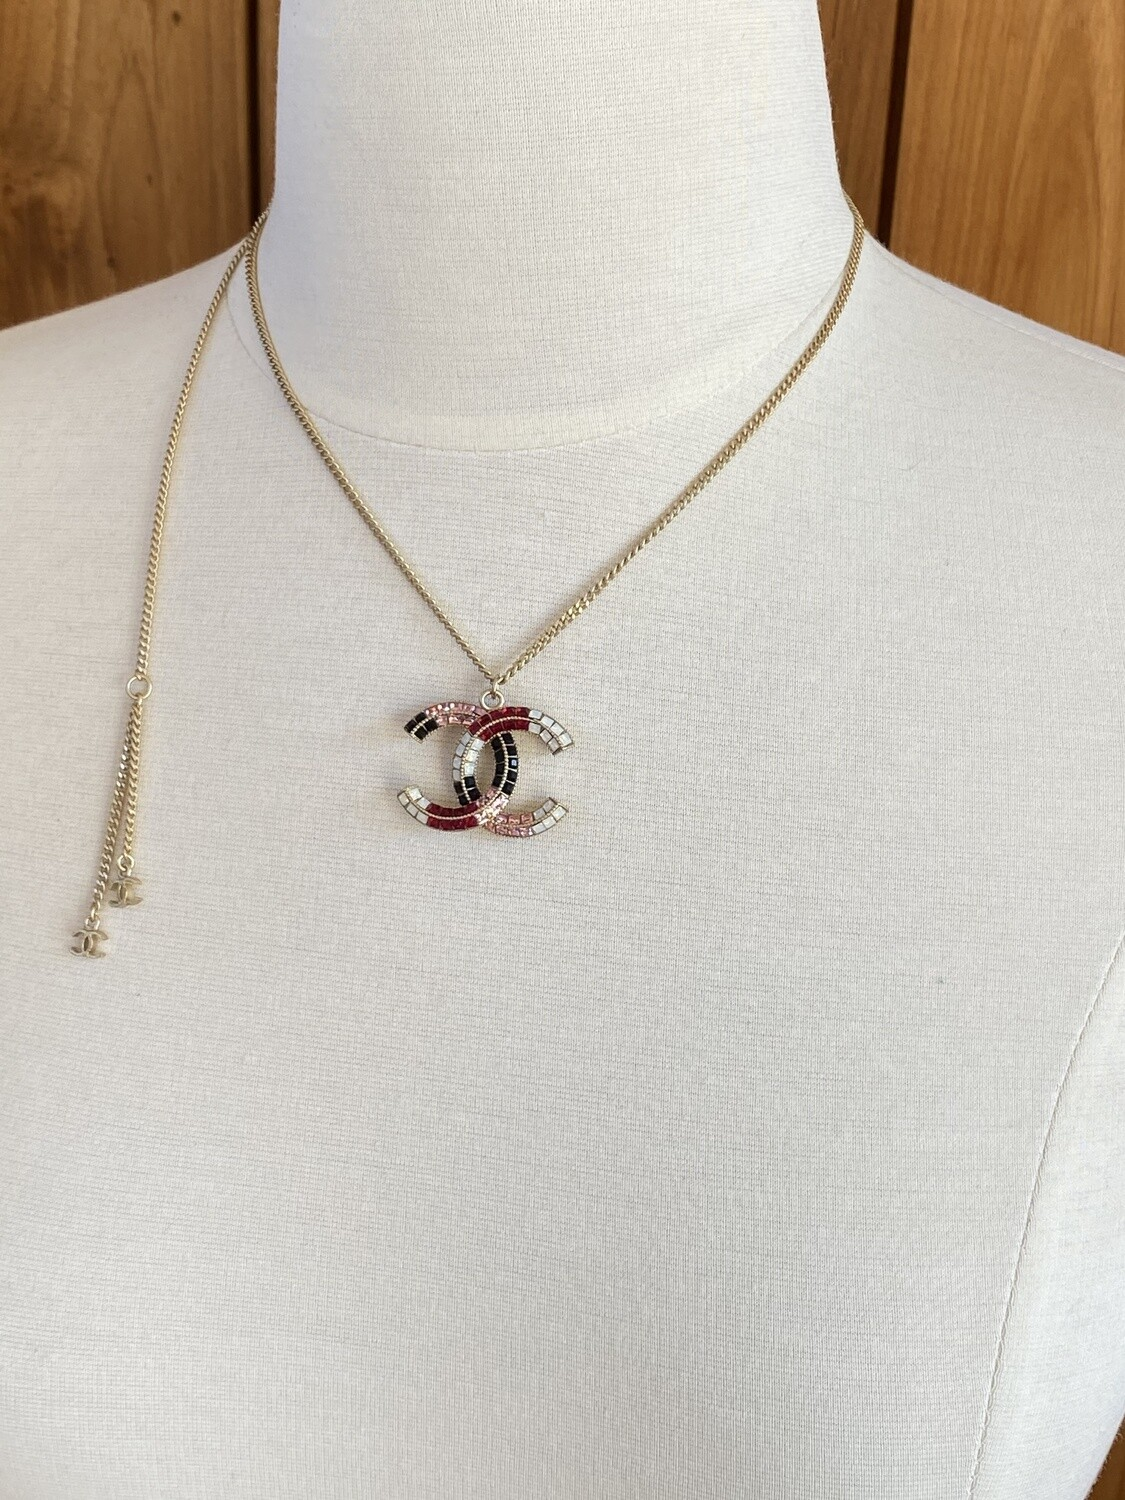 CHANEL CC LOGO CRYSTAL CHARM PENDANT NECKLACE RED / GOLD